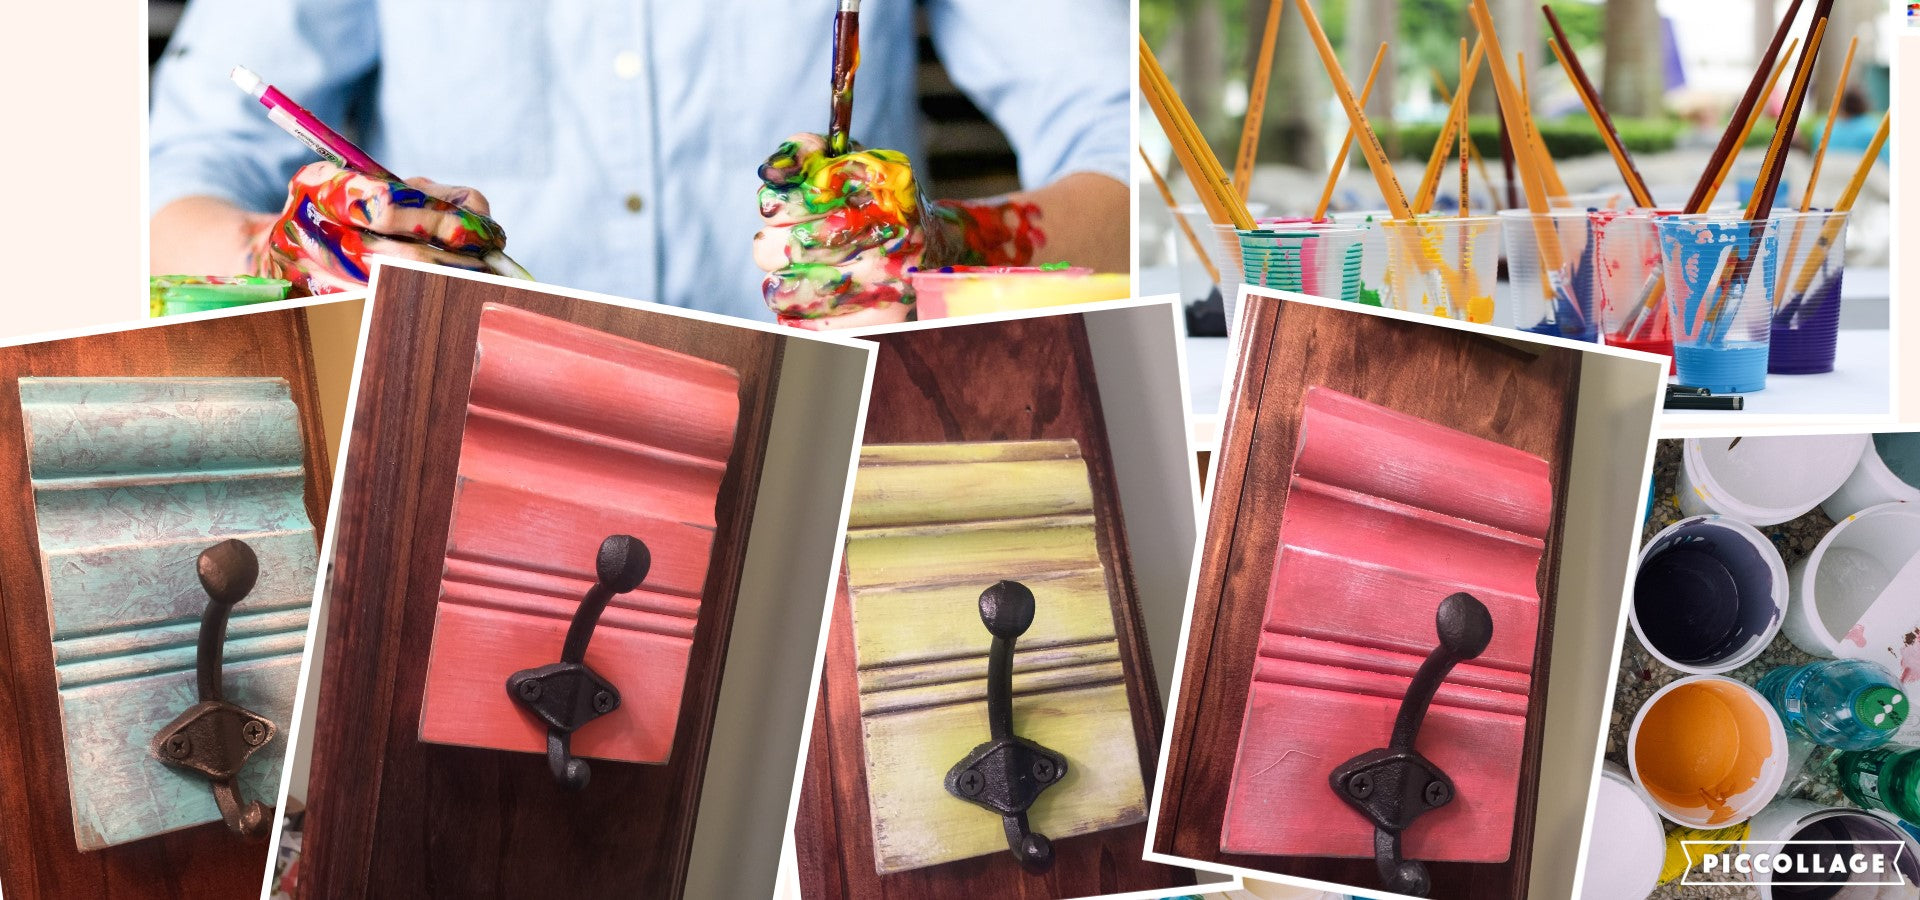 BEYOND THE BASICS WITH CHALK PAINTING APRIL 7, 1-4PM $49